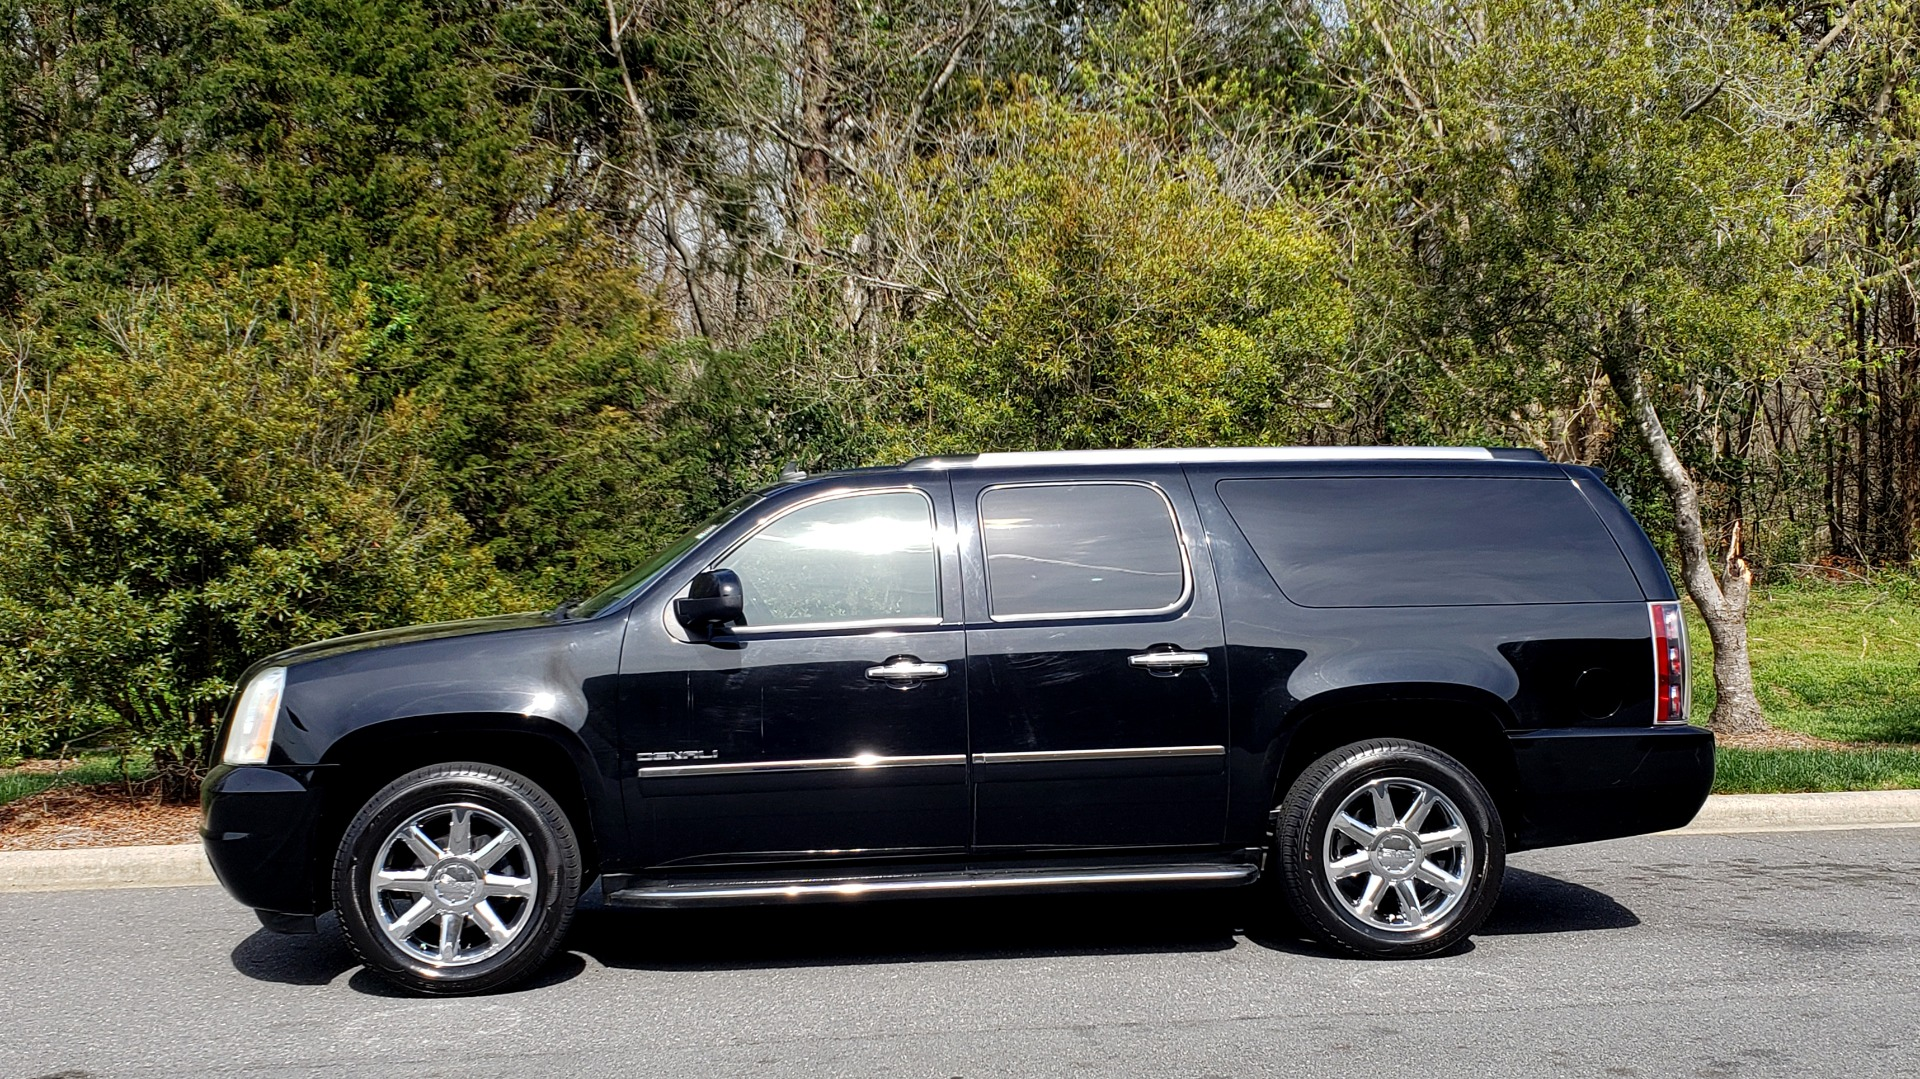 Used 2012 GMC YUKON XL DENALI AWD / NAV / SUN & ENT PKG / SUNROOF / REARVIEW / 3-ROW for sale Sold at Formula Imports in Charlotte NC 28227 2